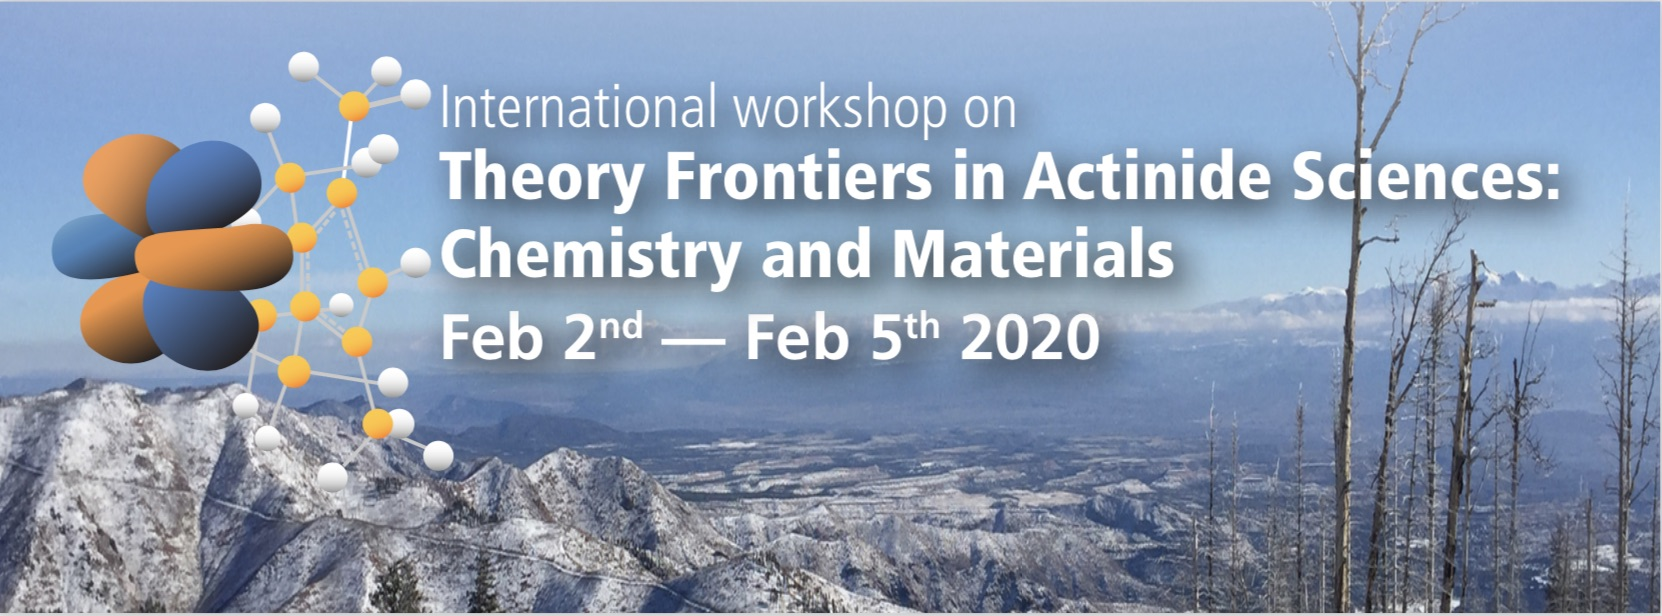 International Workshop on Theory Frontiers in Actinide Sciences: Chemistry and Materials